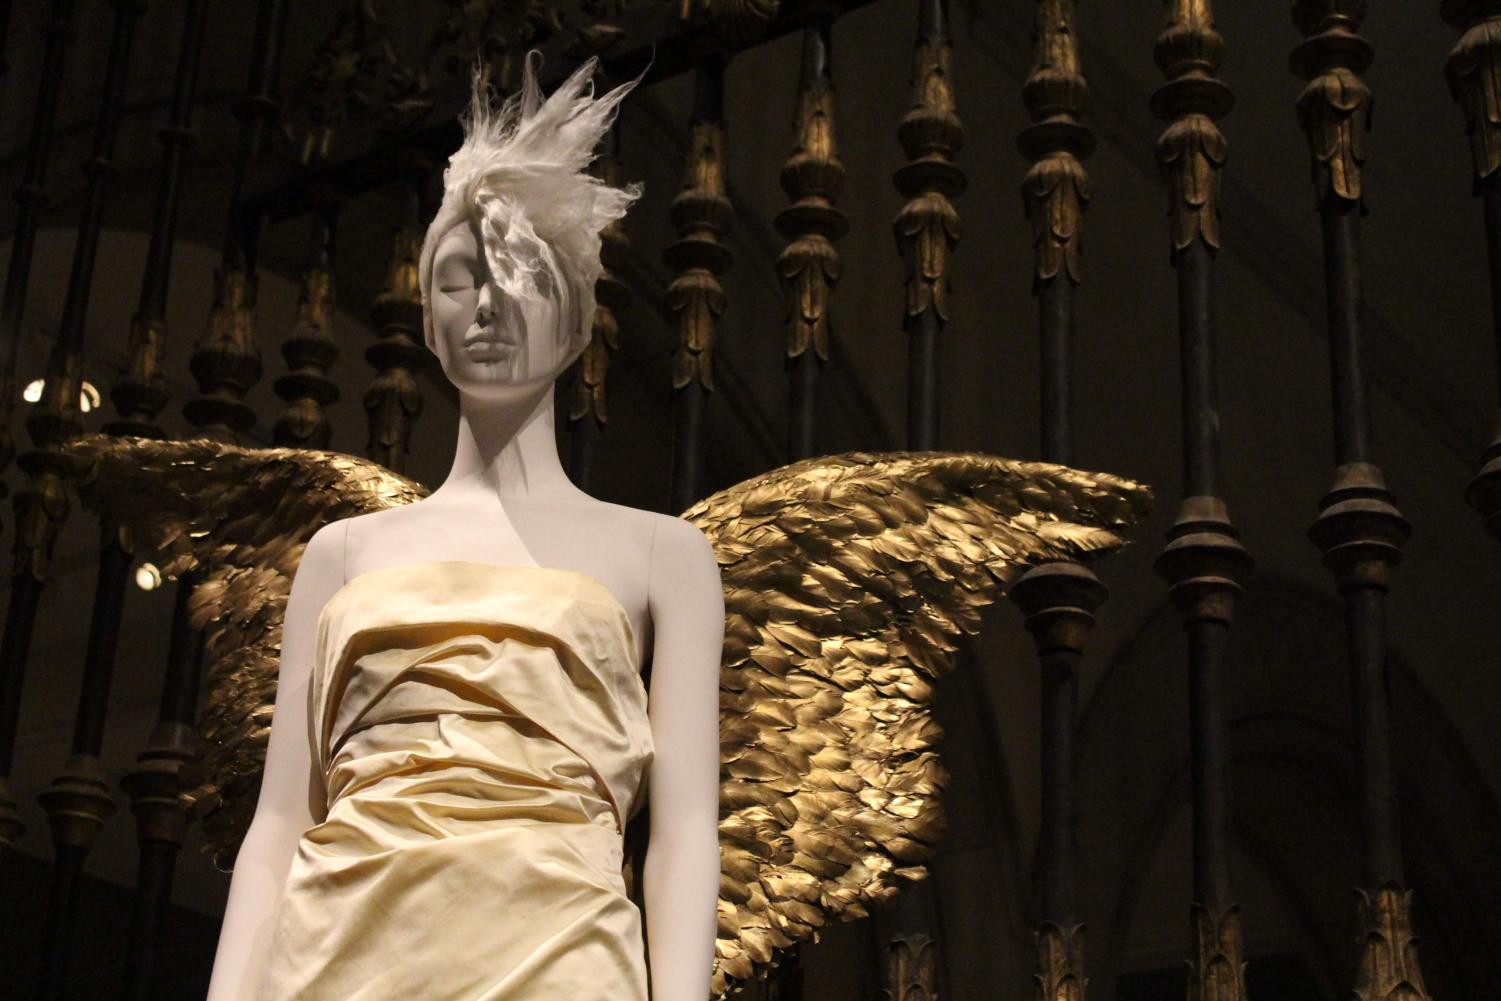 """The Met's """"Heavenly Body"""" exhibit melds faith and fashion in a unique look into Catholicism and clothing."""